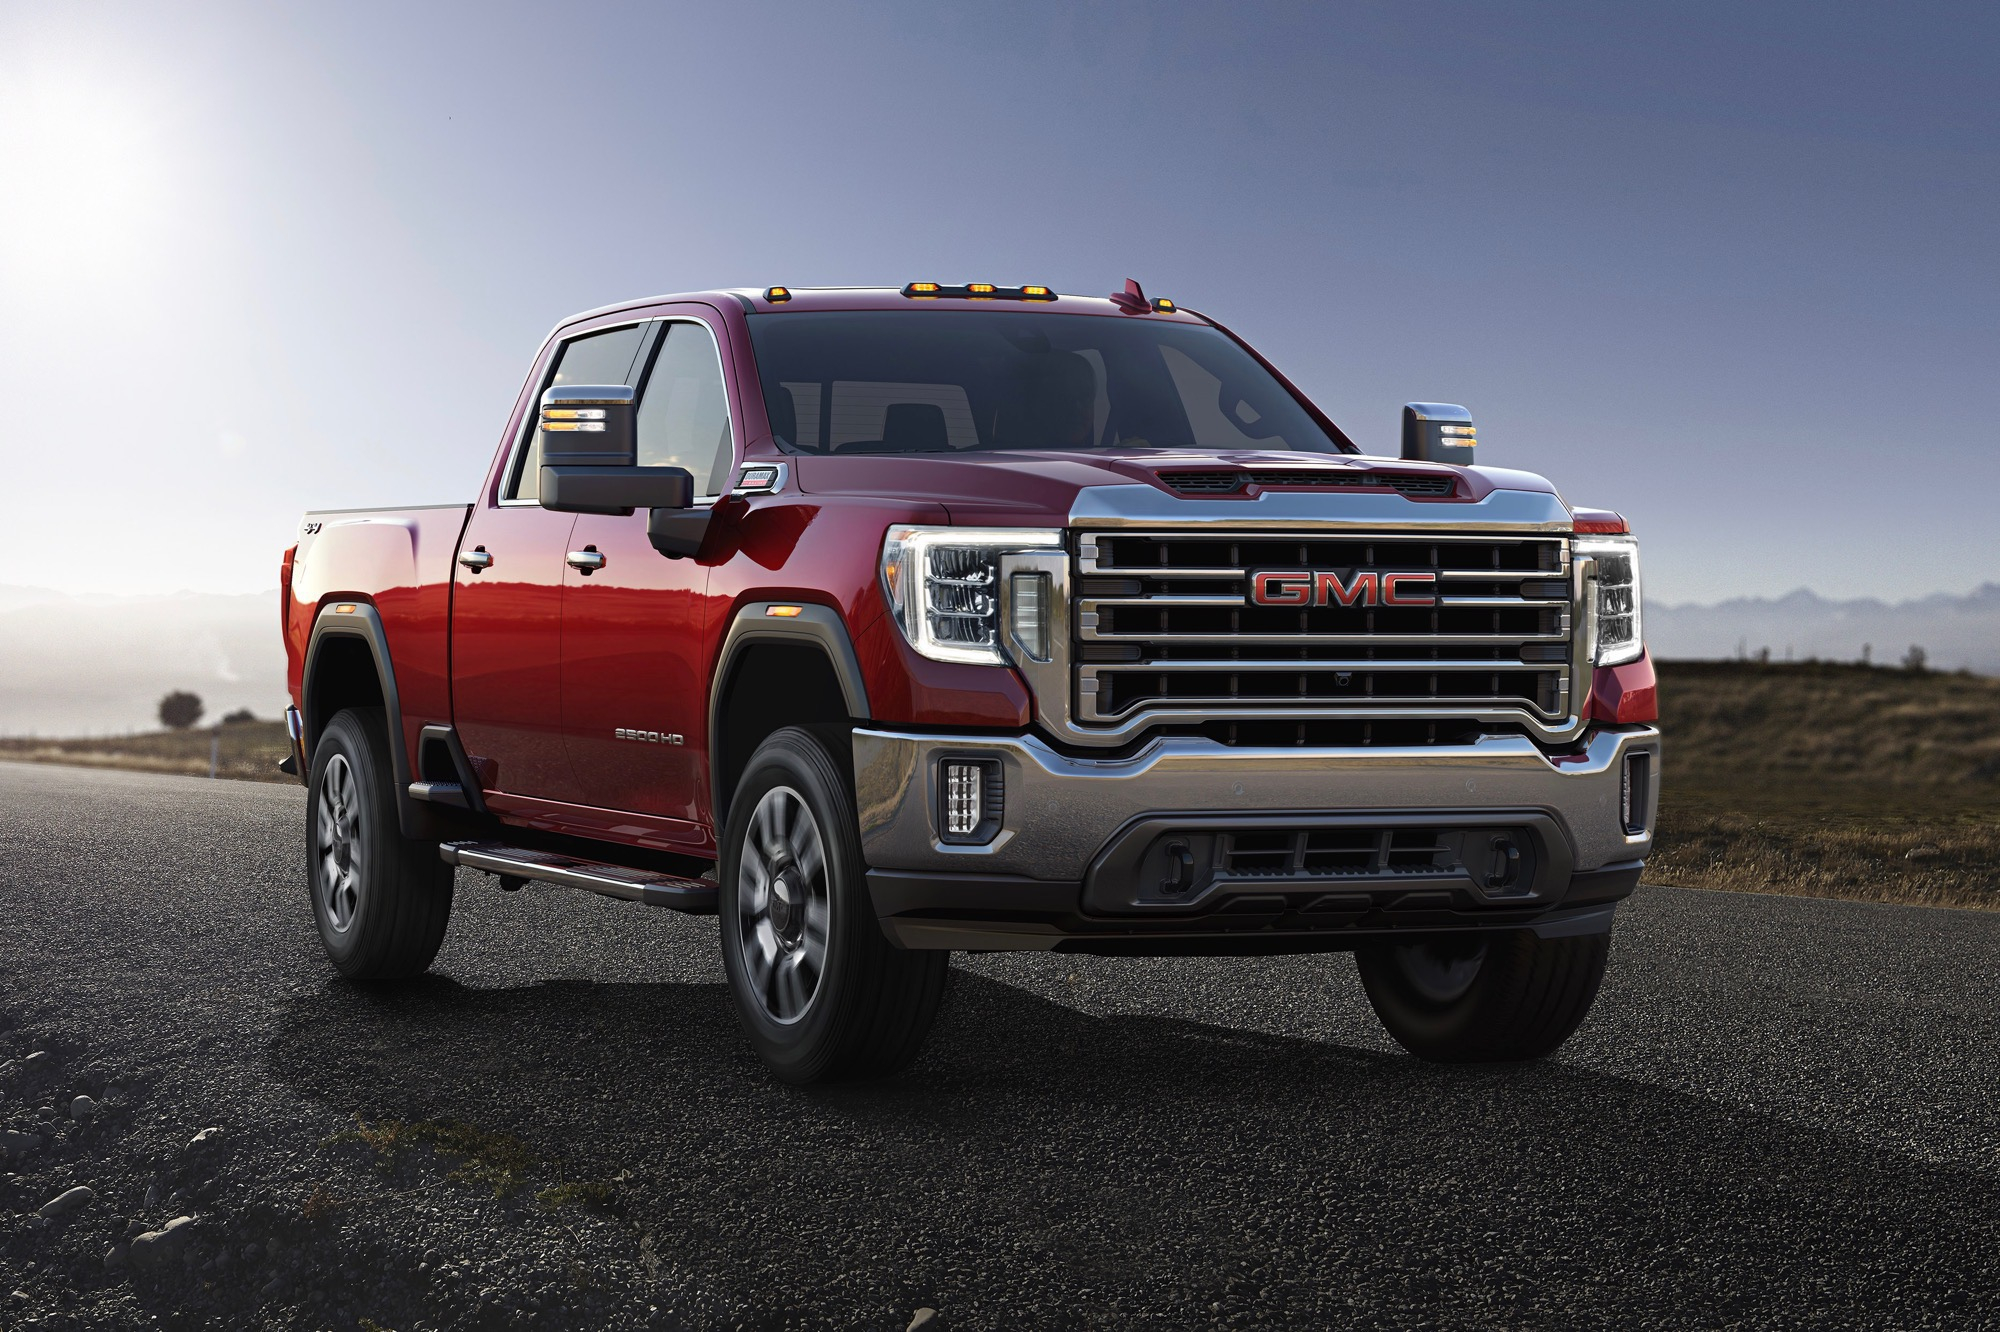 Gmc 2020 Heavy Duty Lineup Continues With Sierra Hd Models 2020 Gmc Sierra 2500Hd Double Cab